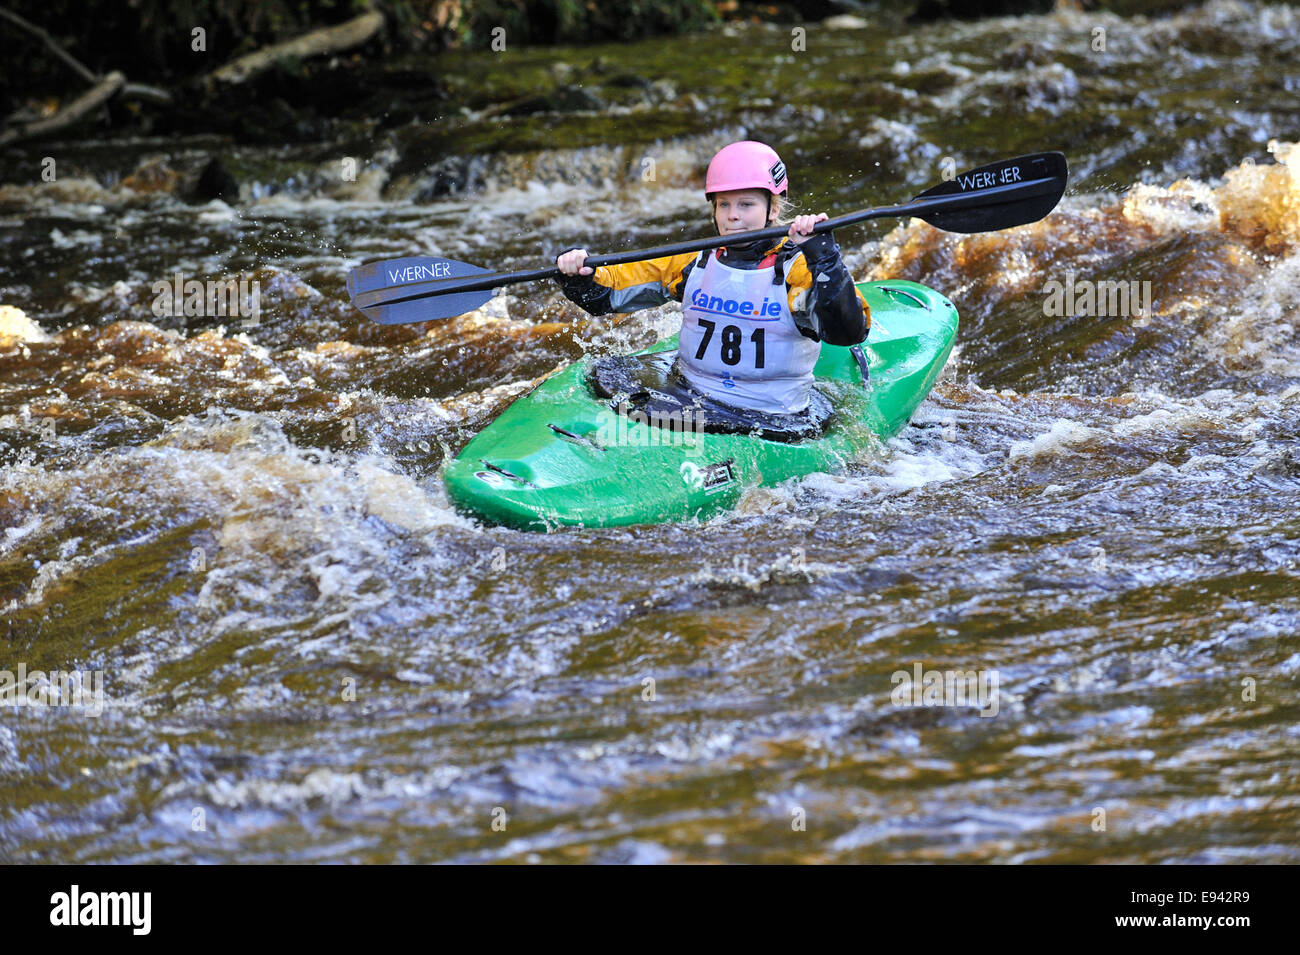 Stock Photo - Kayak competencia, Buncrana, Condado de Donegal, Irlanda. ©George Sweeney /Alamy Imagen De Stock